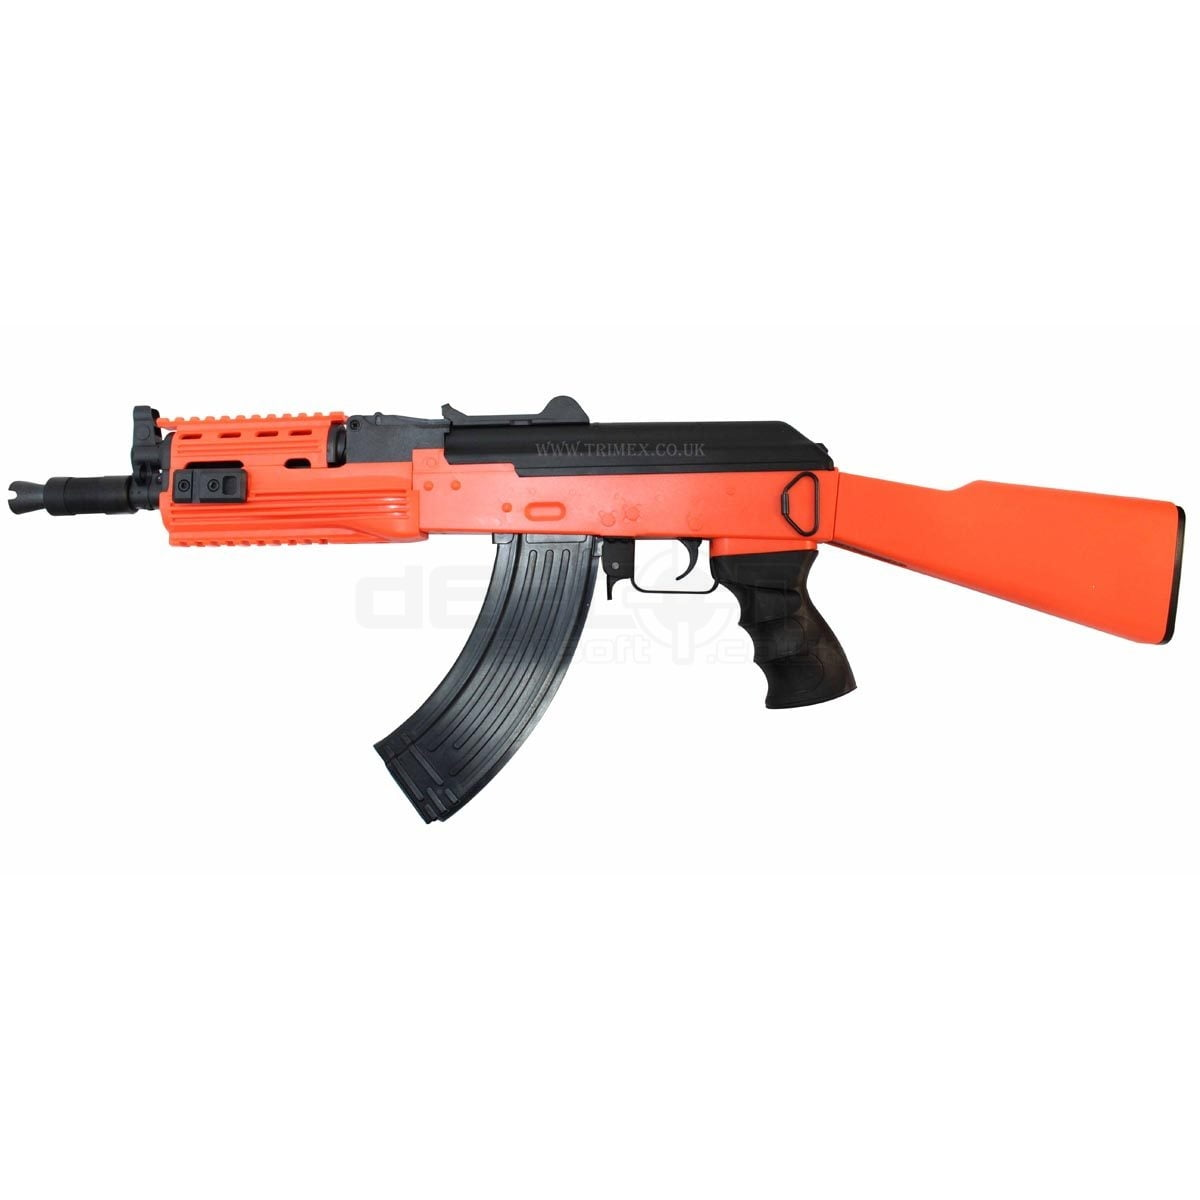 Airsoft guns uk